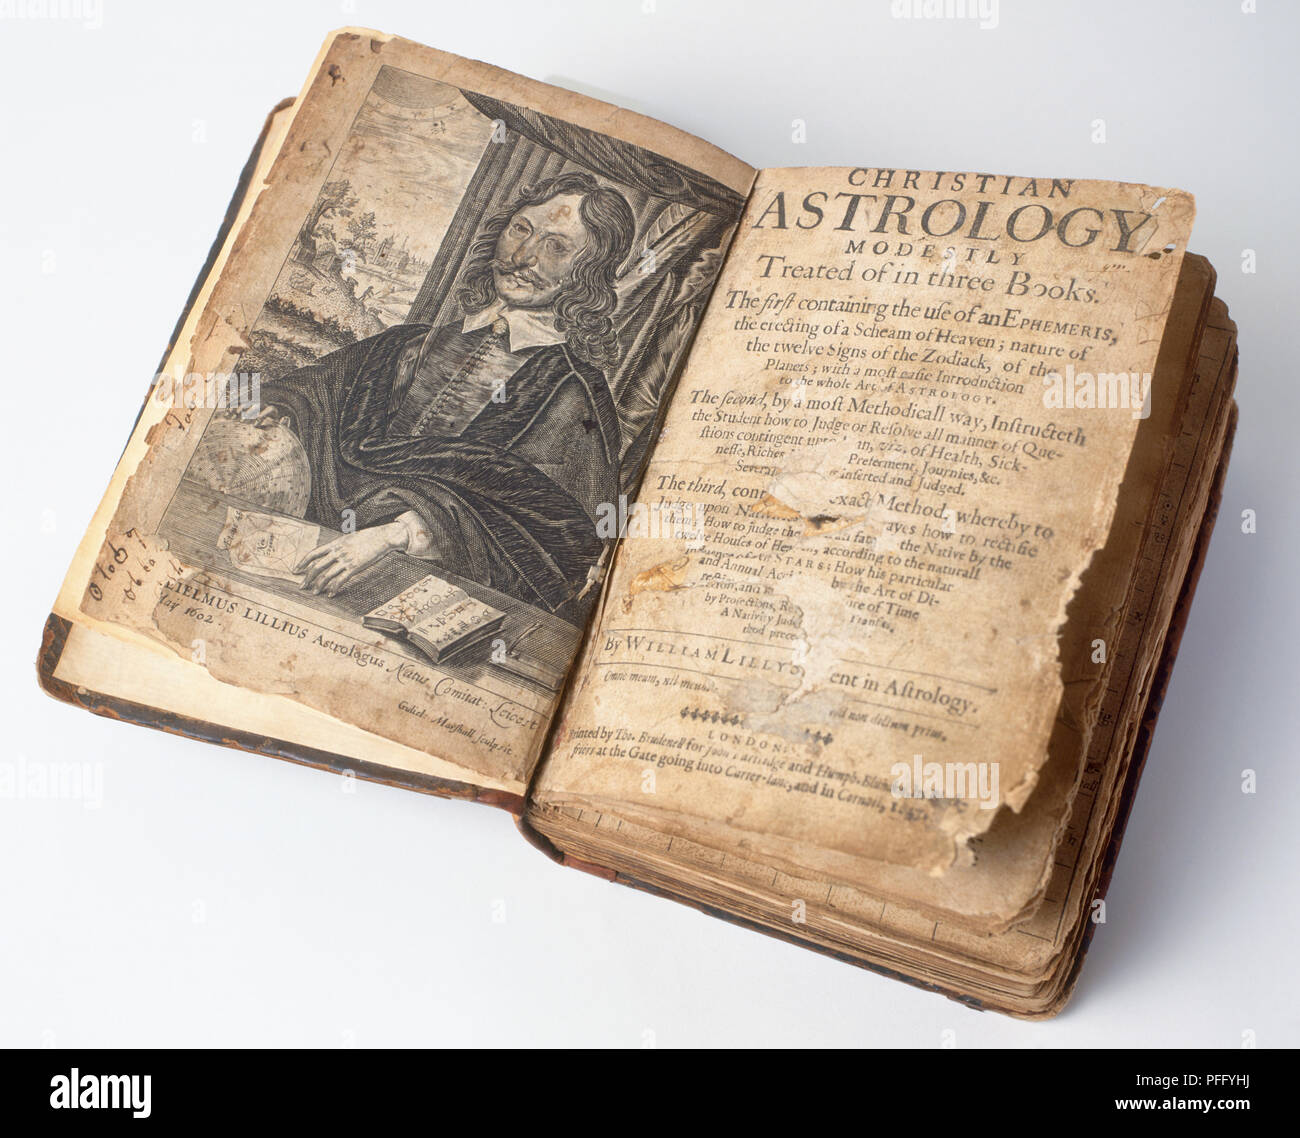 Horary astrology book lying open, 17th century - Stock Image